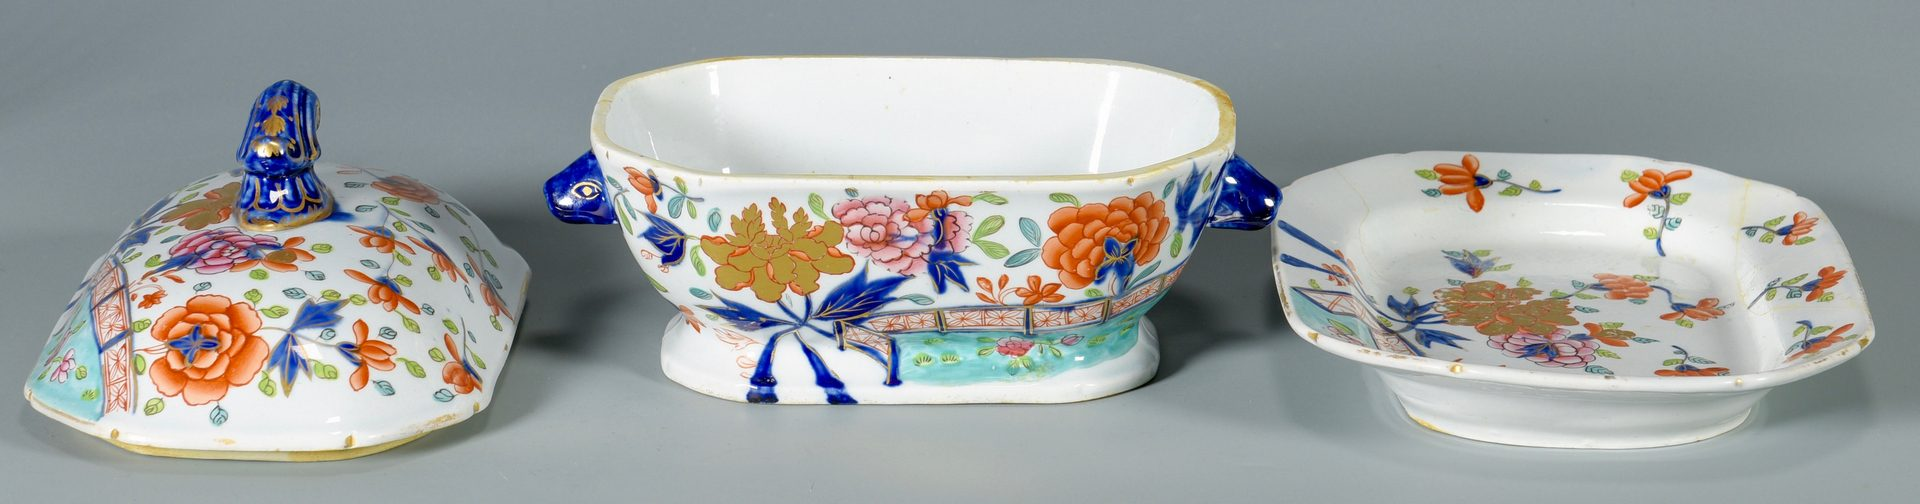 Lot 76: Group of 4 Asian Themed Porcelain Items